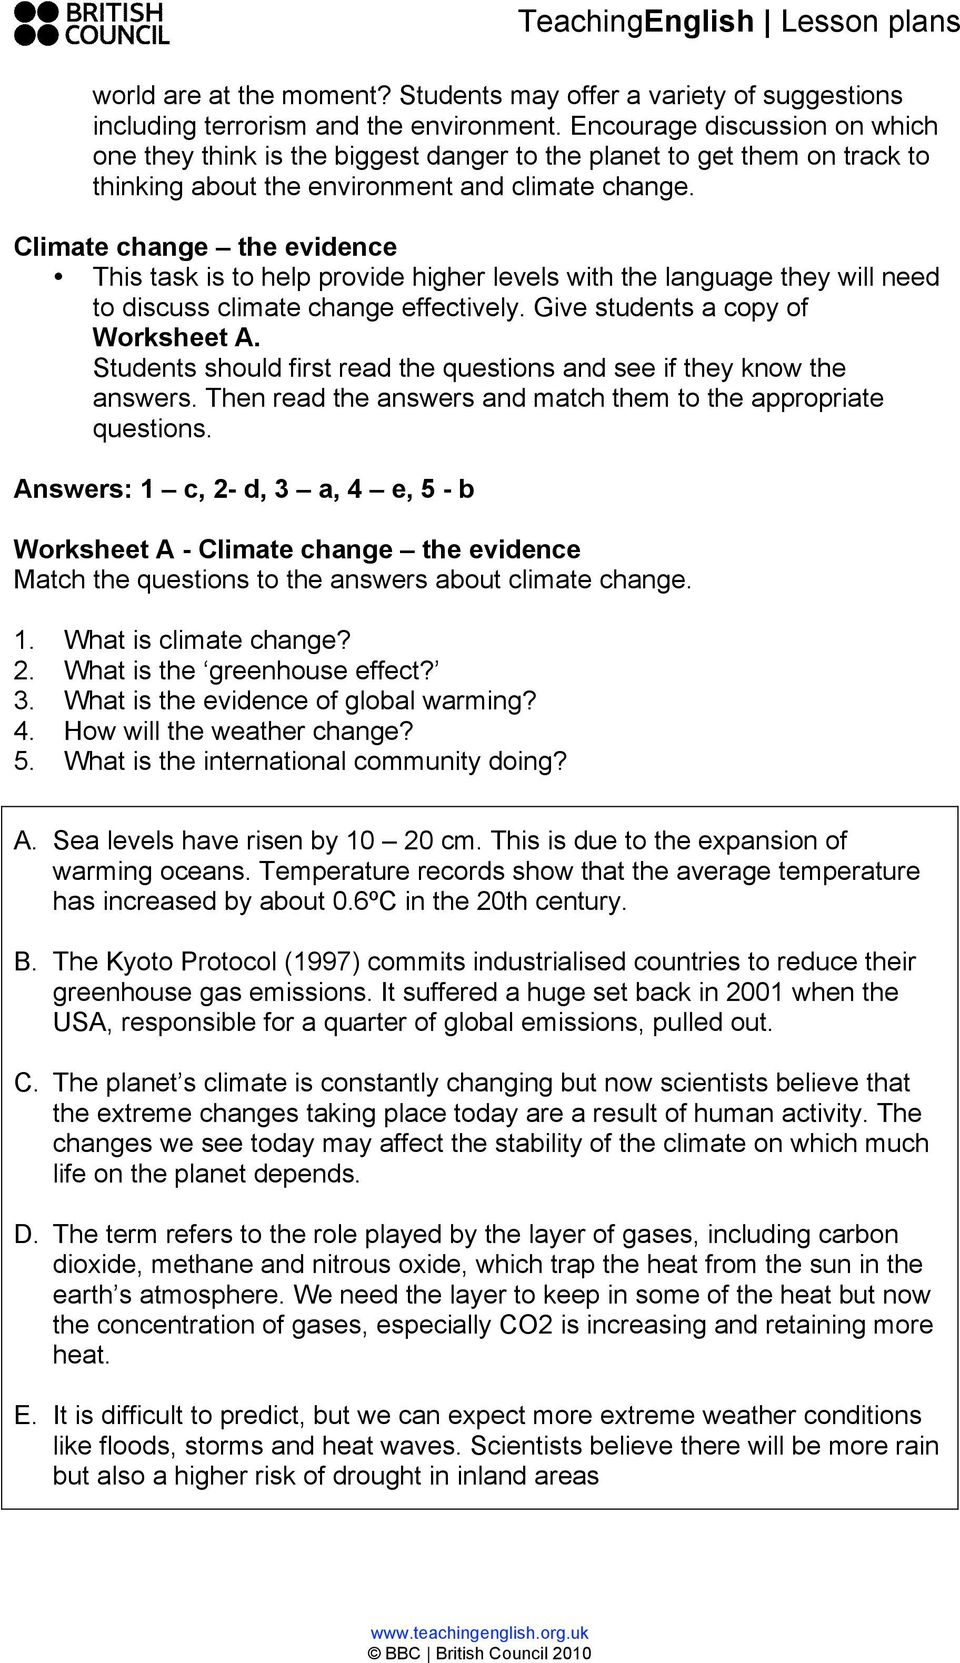 global warming questions and answers for students